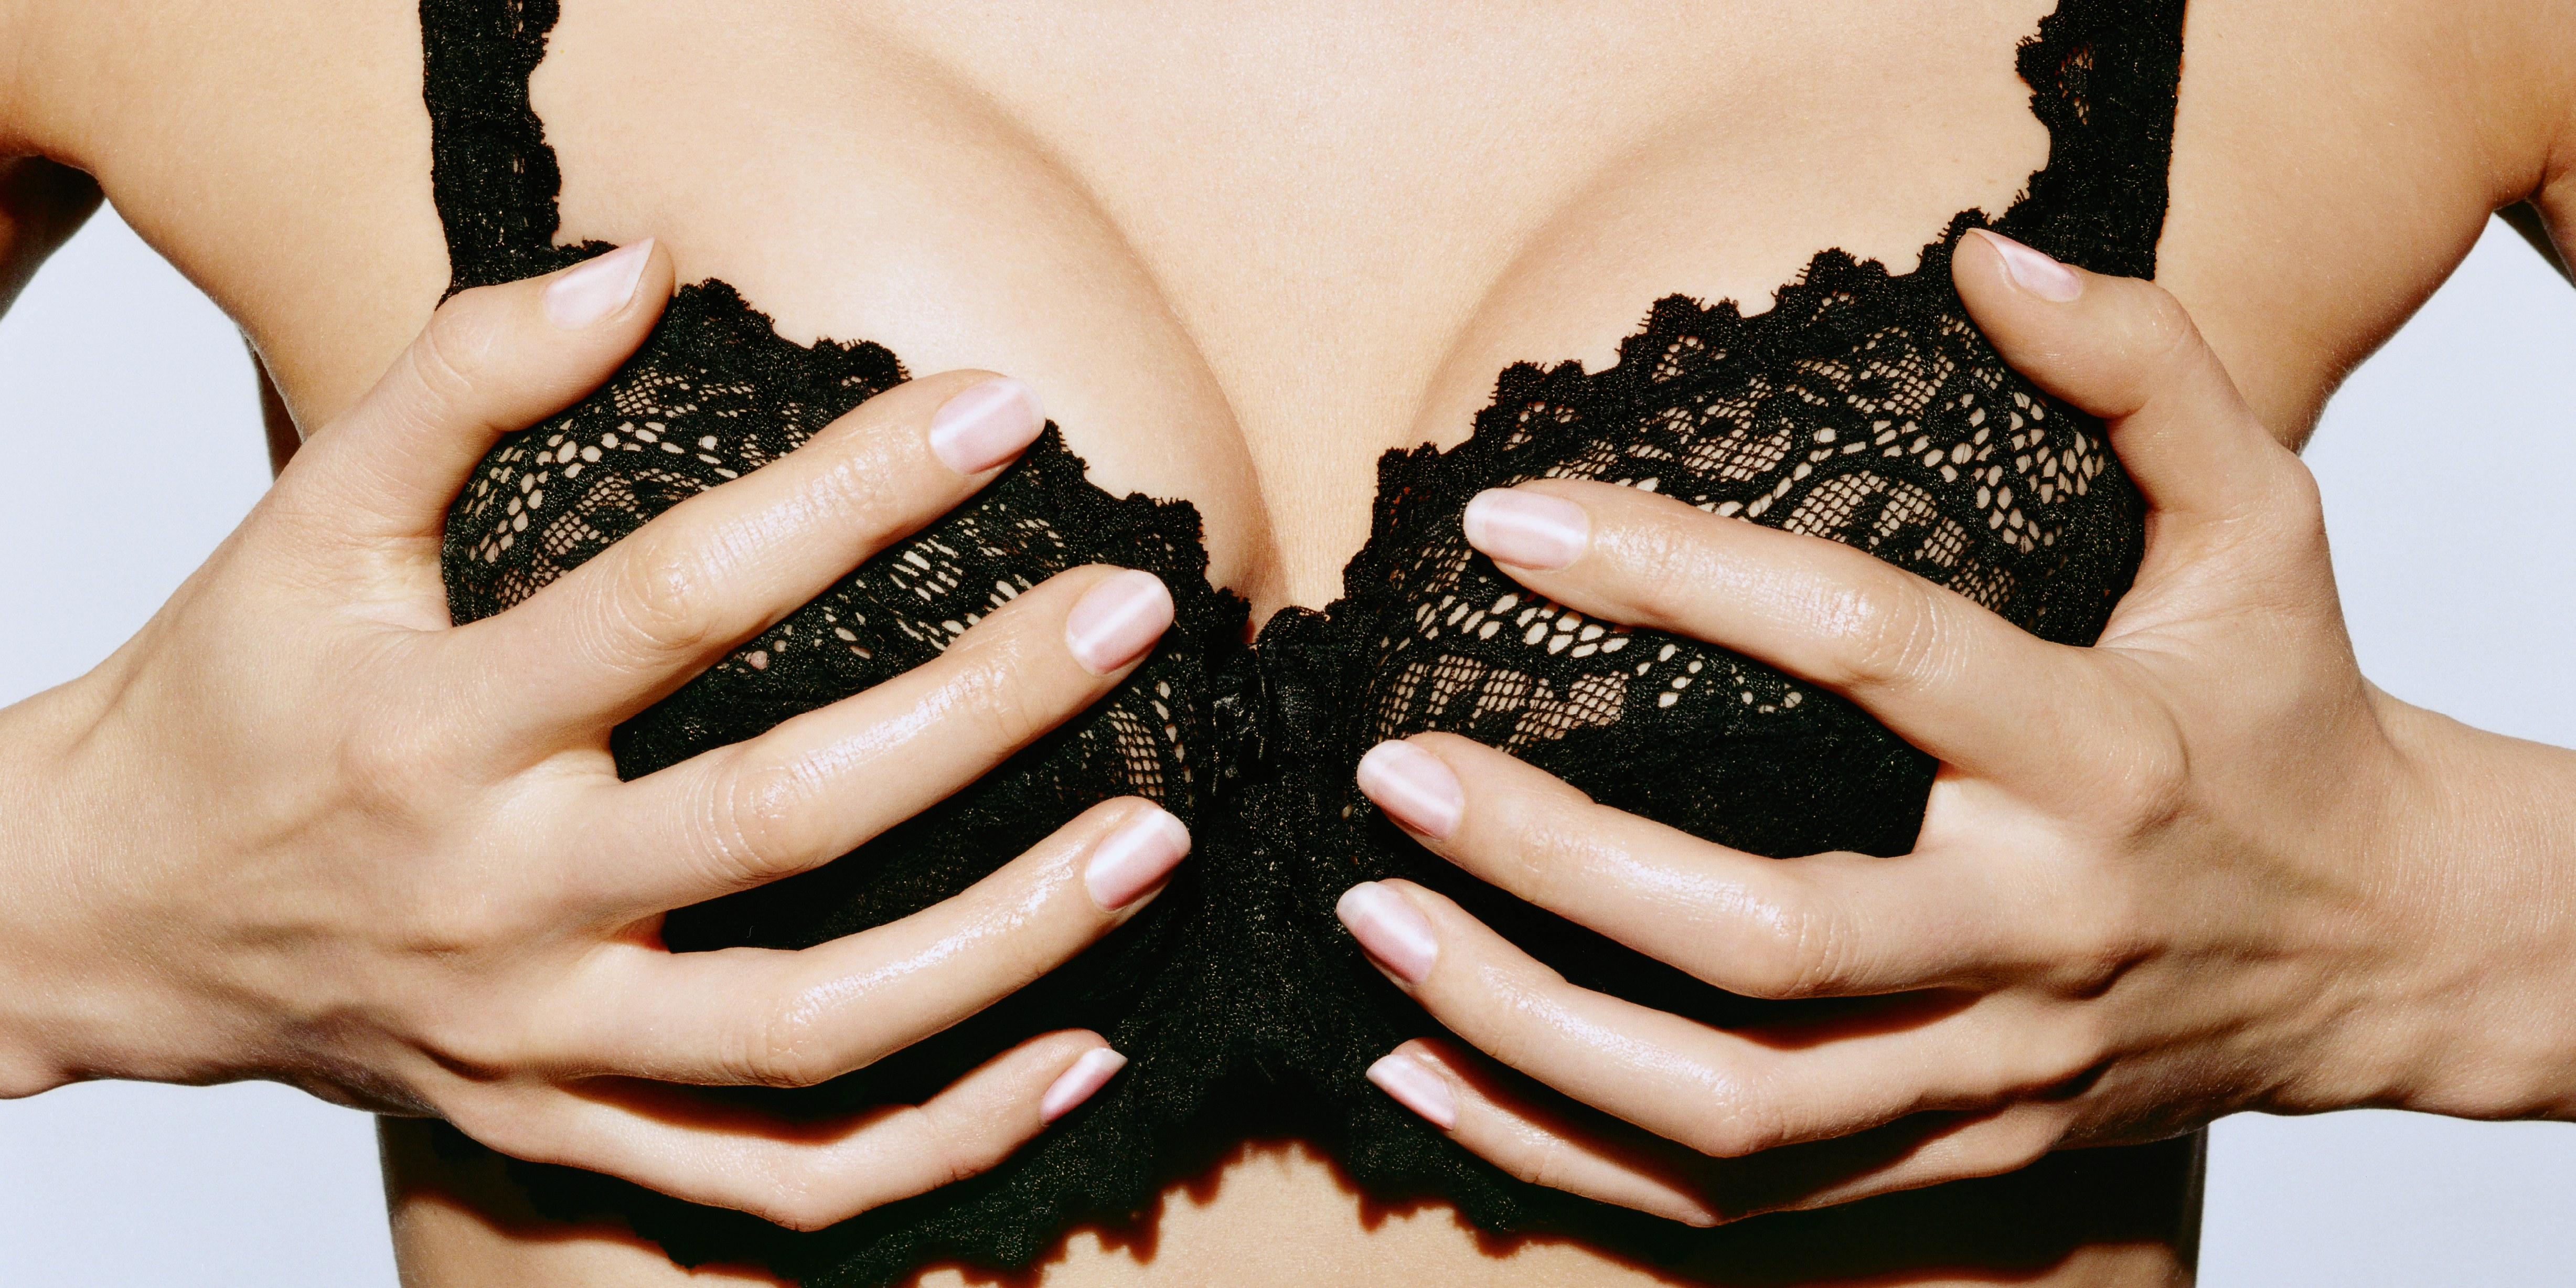 breast implants melbourne